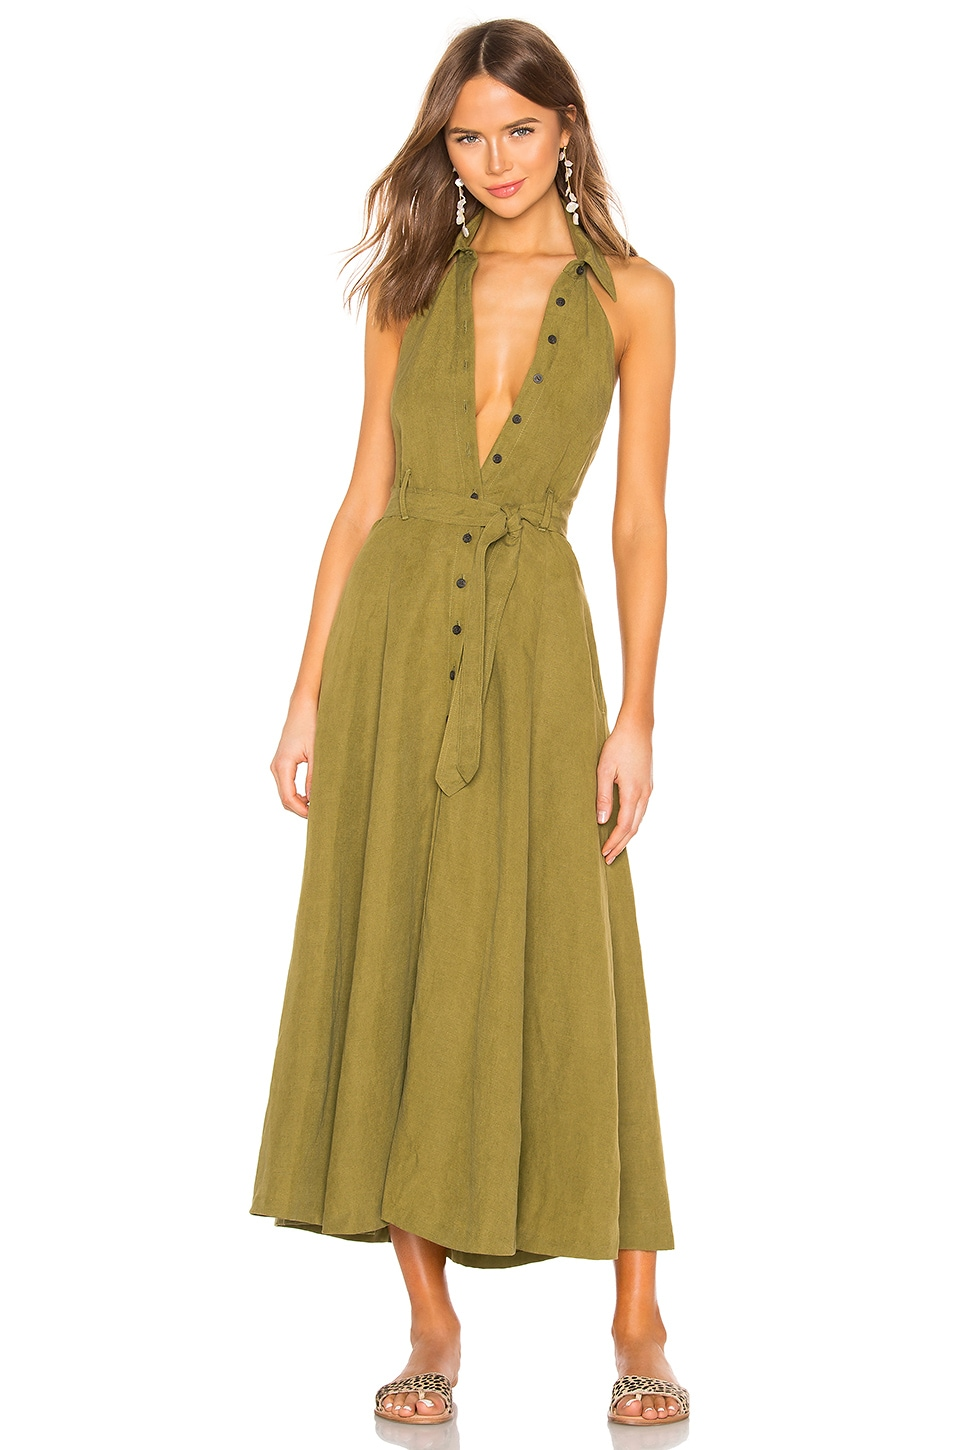 Mara Hoffman Rosemary Dress in Olive